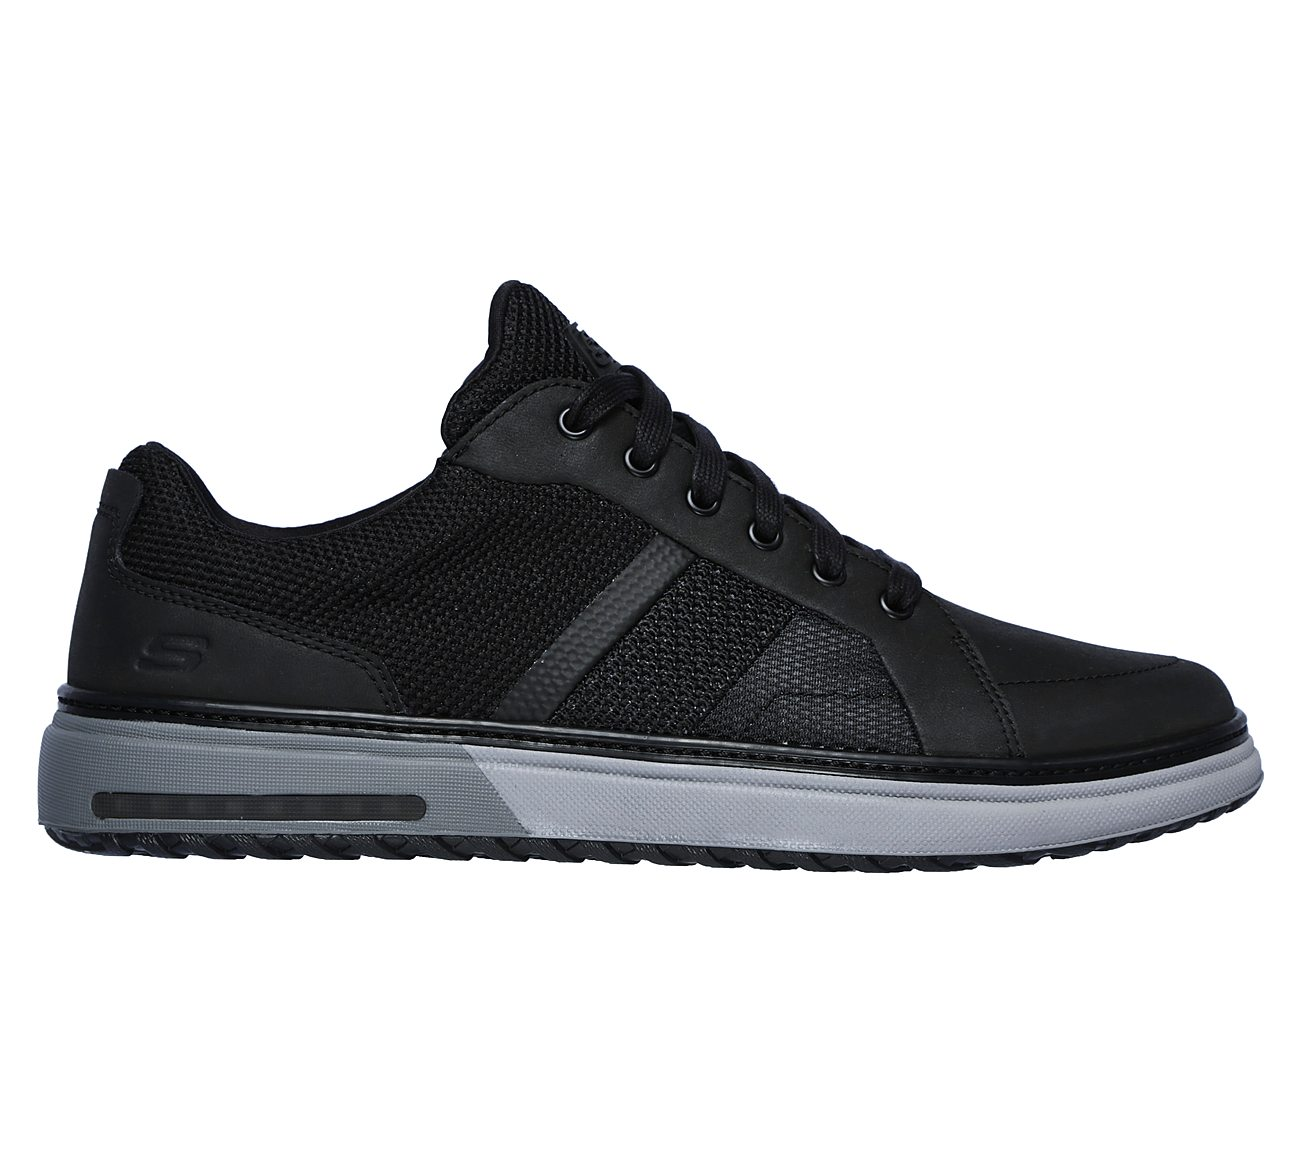 f046131a81b Buy SKECHERS Folten - Hartwell USA Casuals Shoes only  75.00